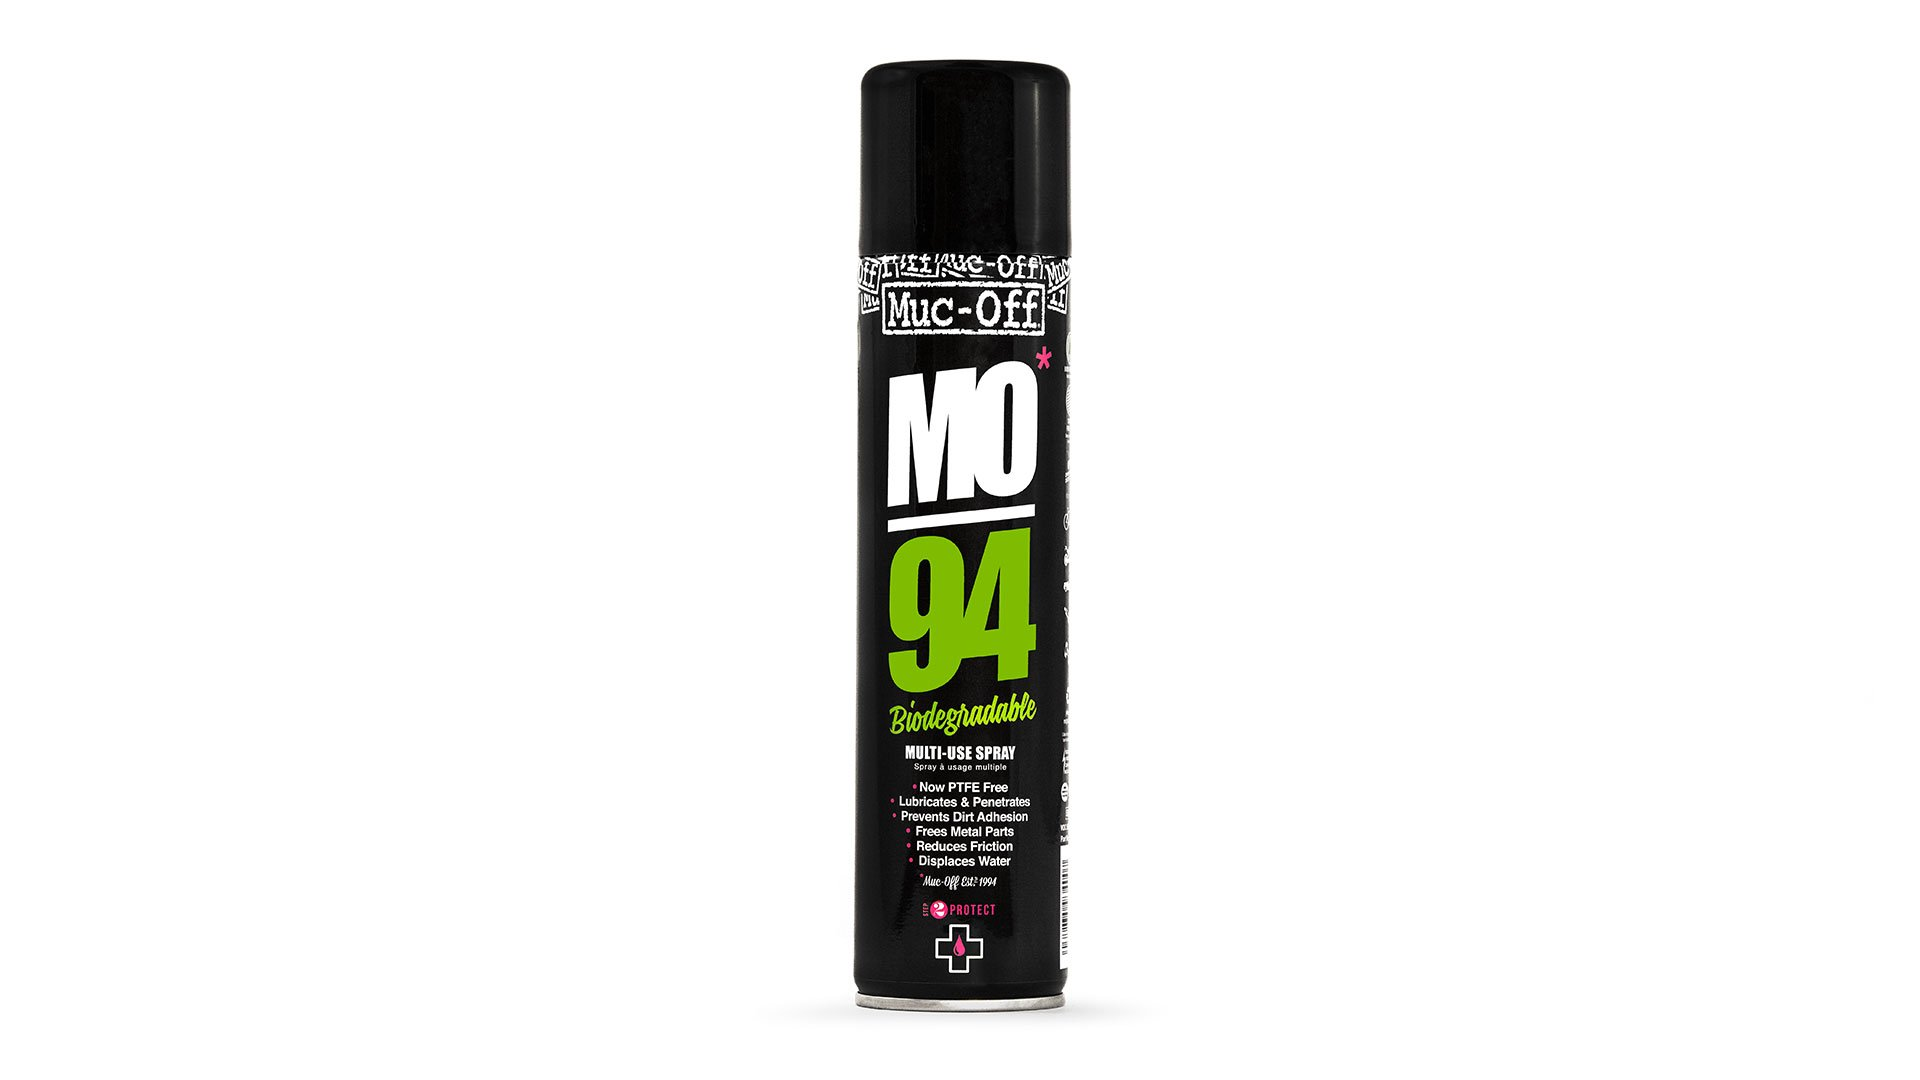 MUC-OFF MO94 Multi- use spray with PTFE